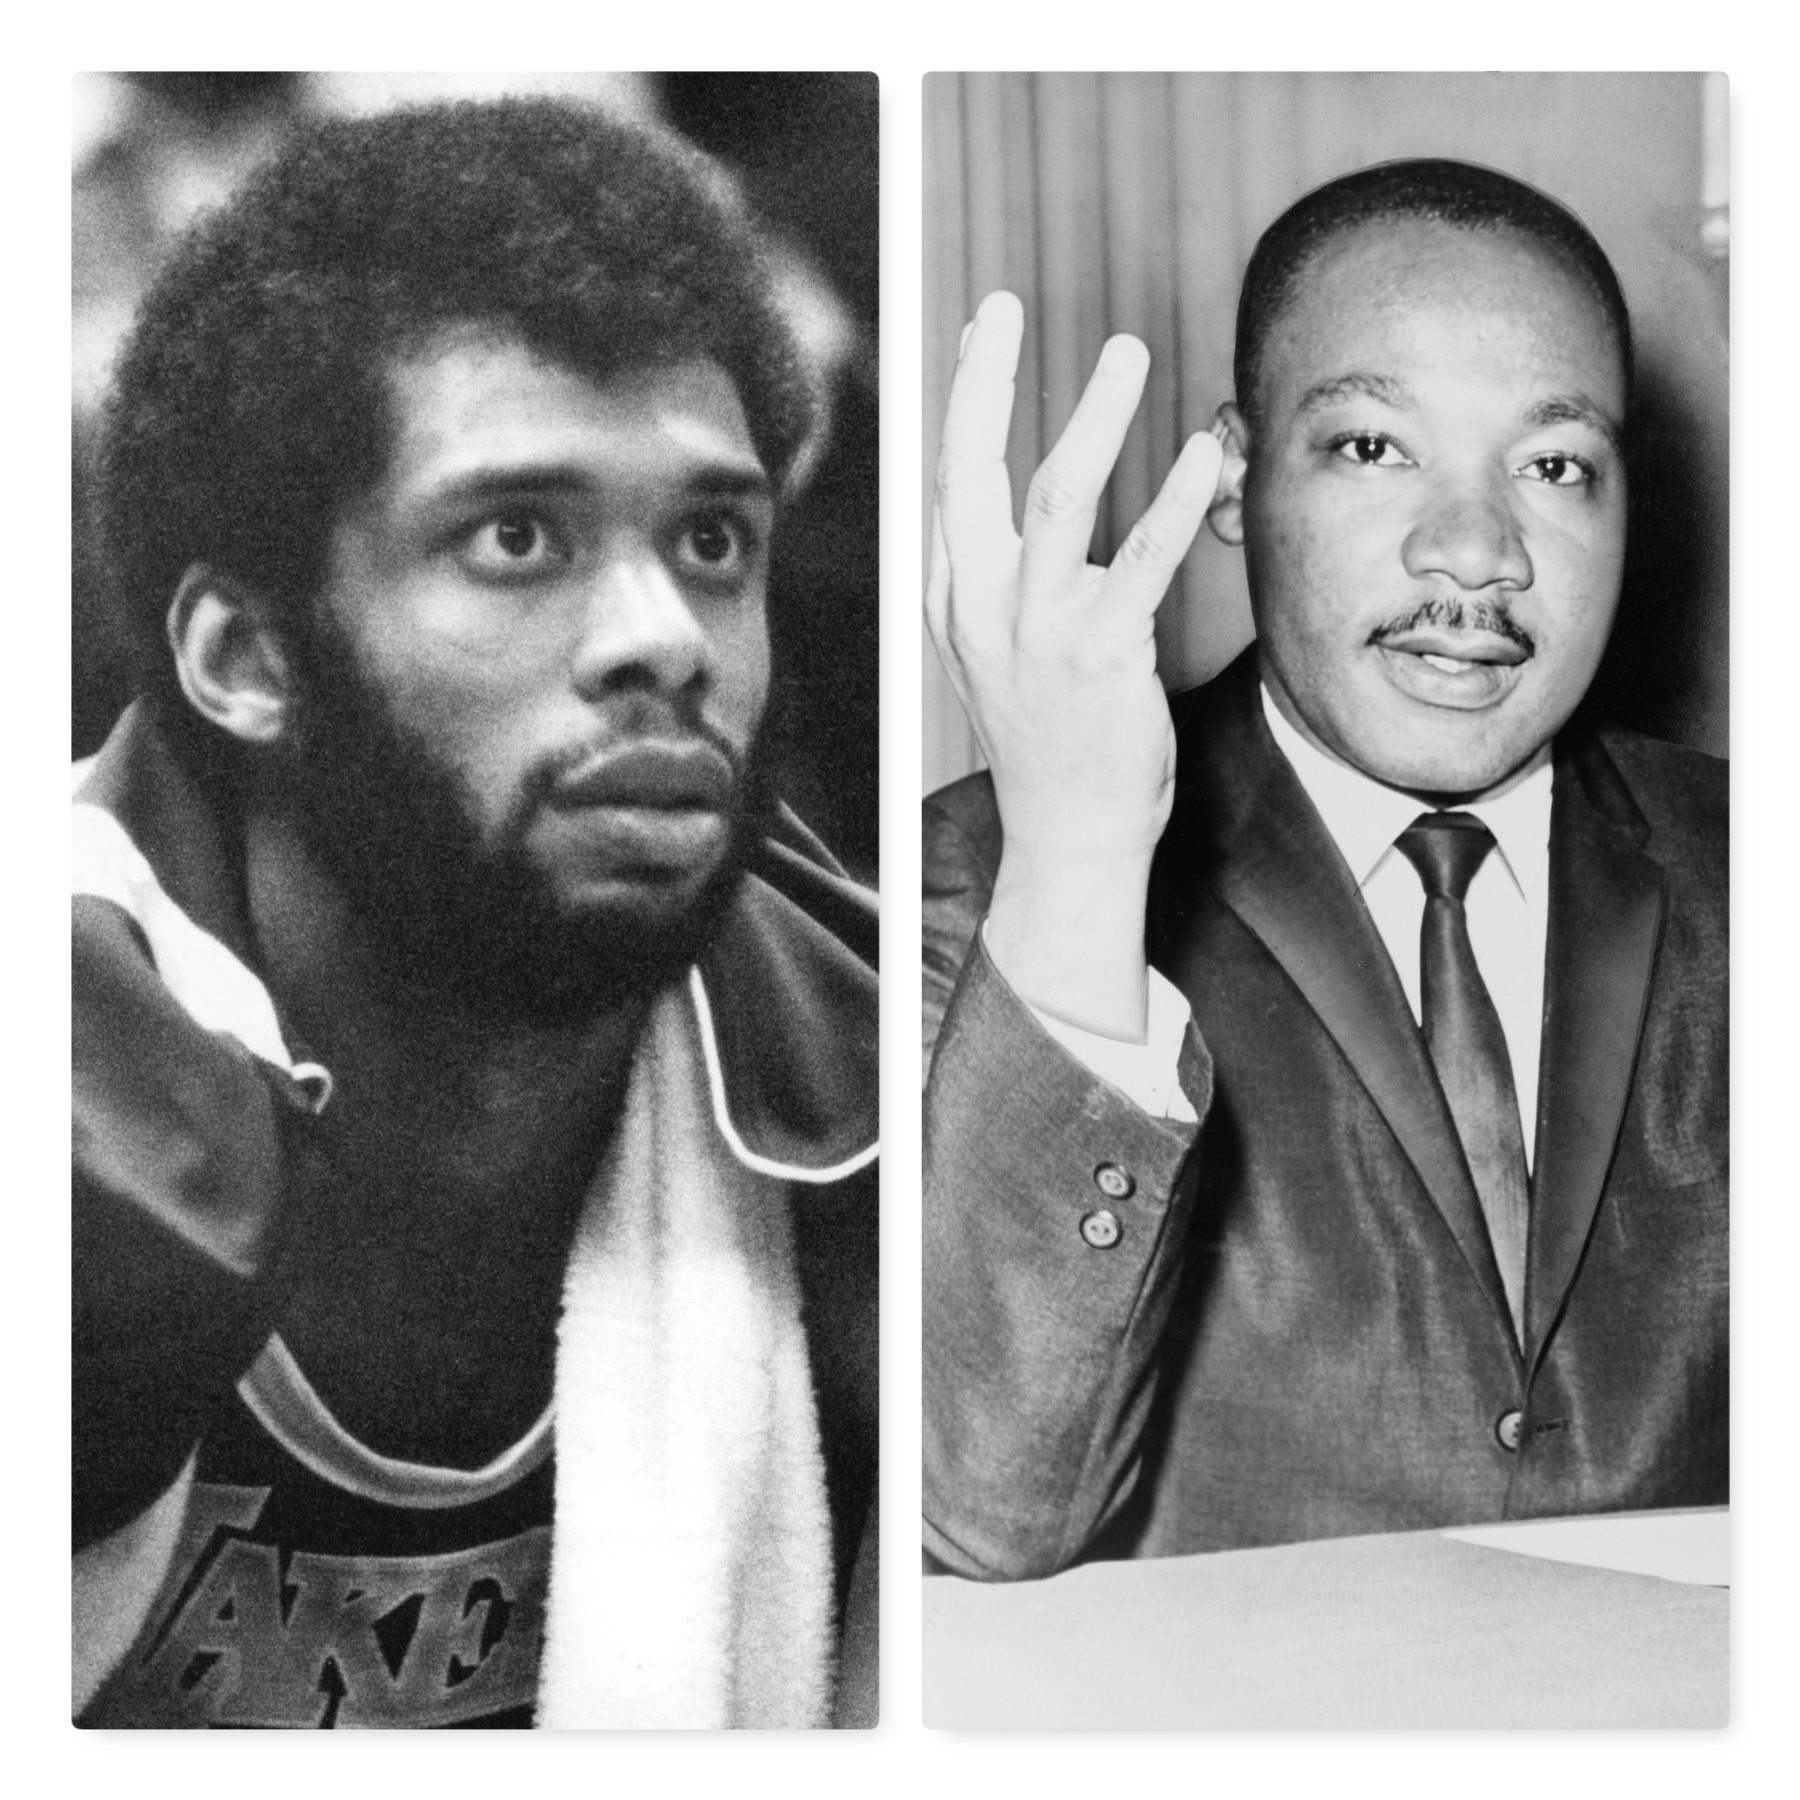 newest ea2f0 1f599 Young Kareem Abdul-Jabbar Interviewed The King - Los Angeles ...